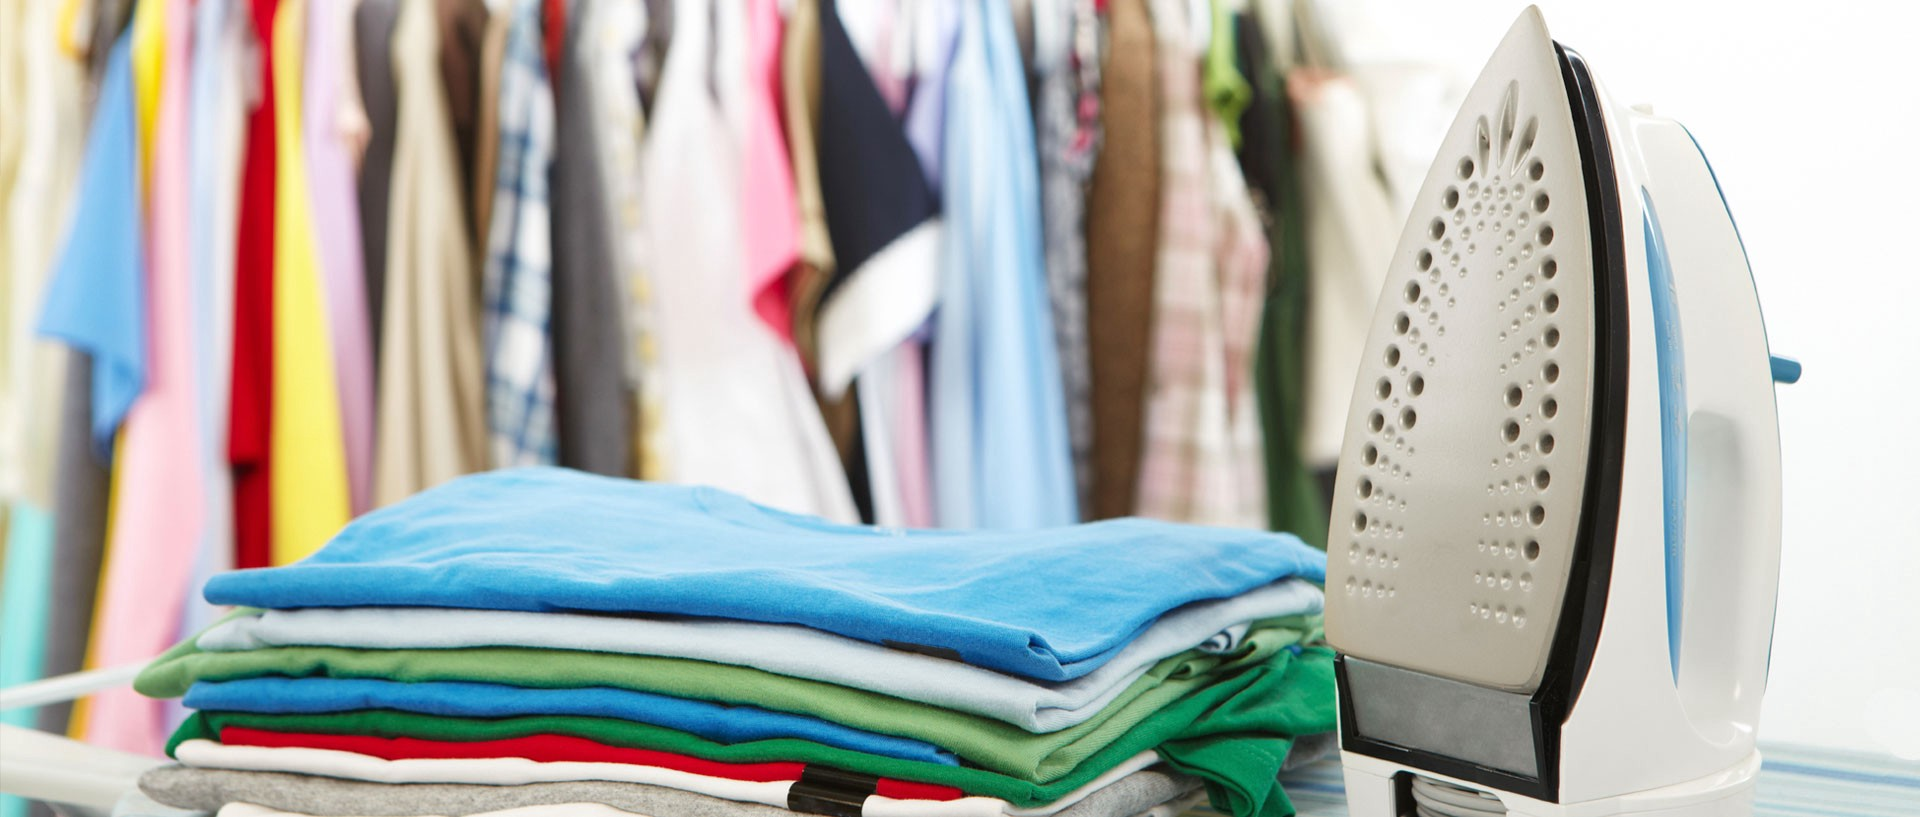 Profitable Dry Cleaners and Laundry Business for Sale in Gurgaon